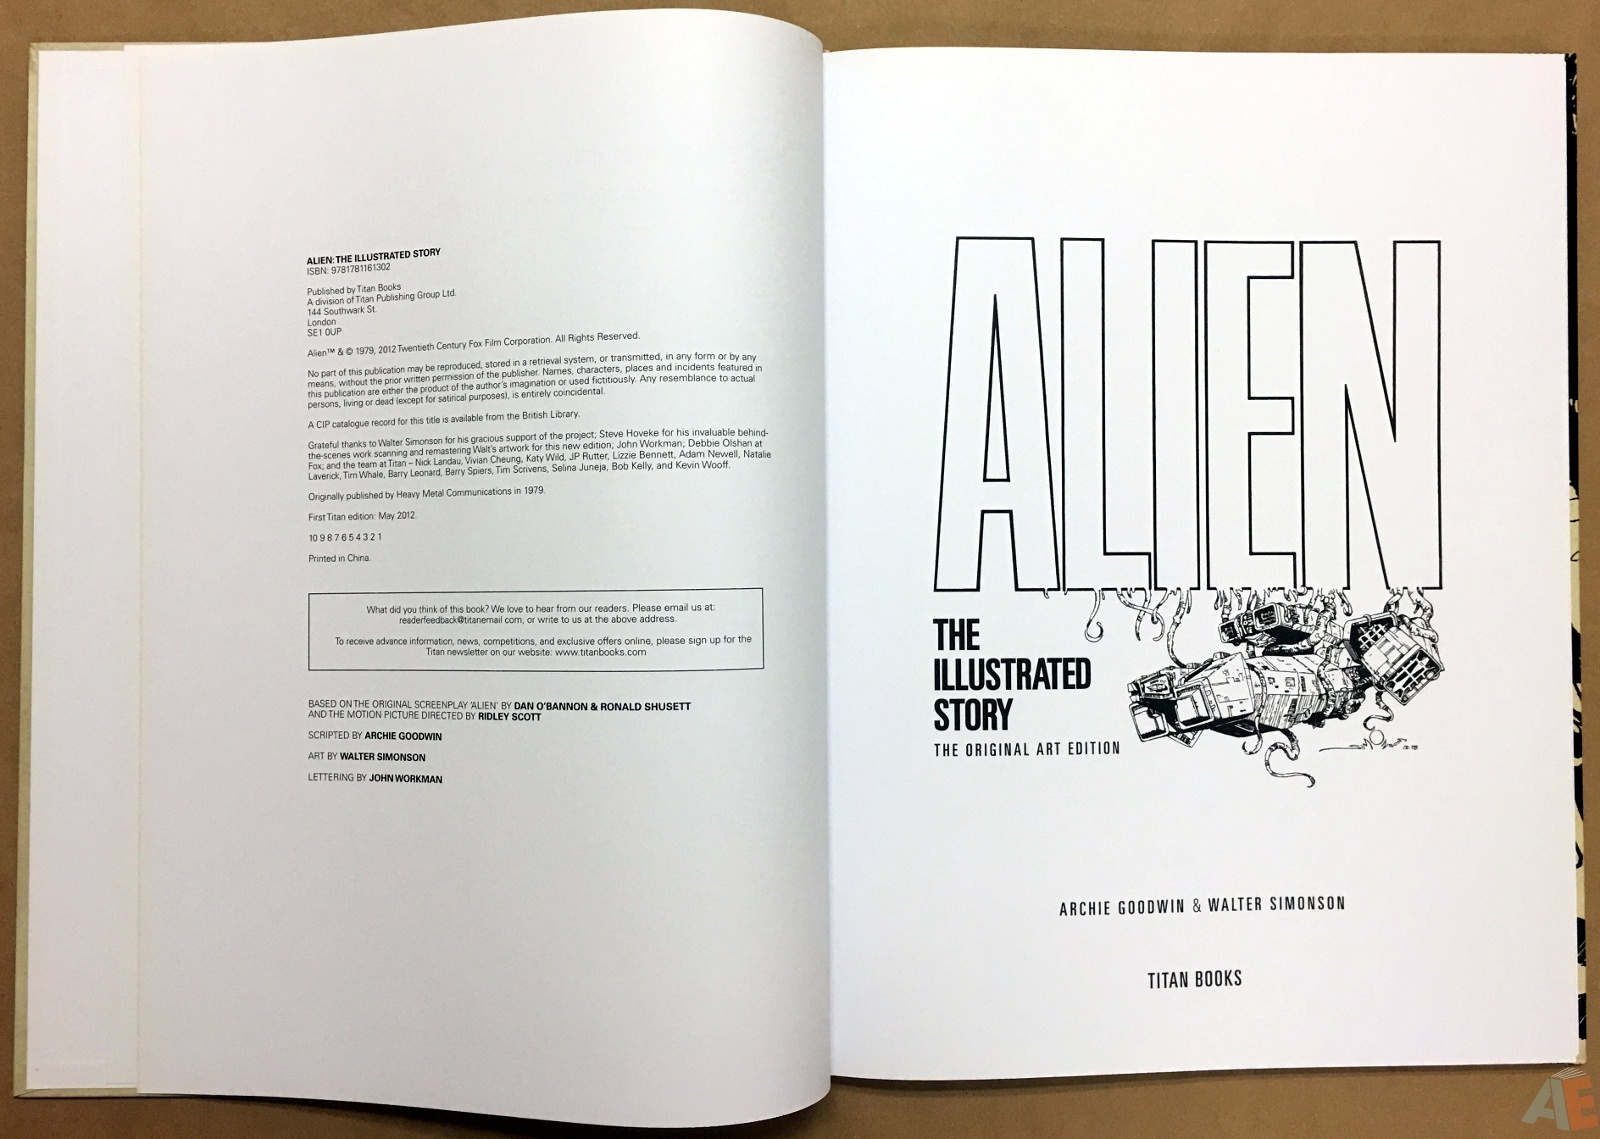 Alien: The Illustrated Story, The Original Art Edition